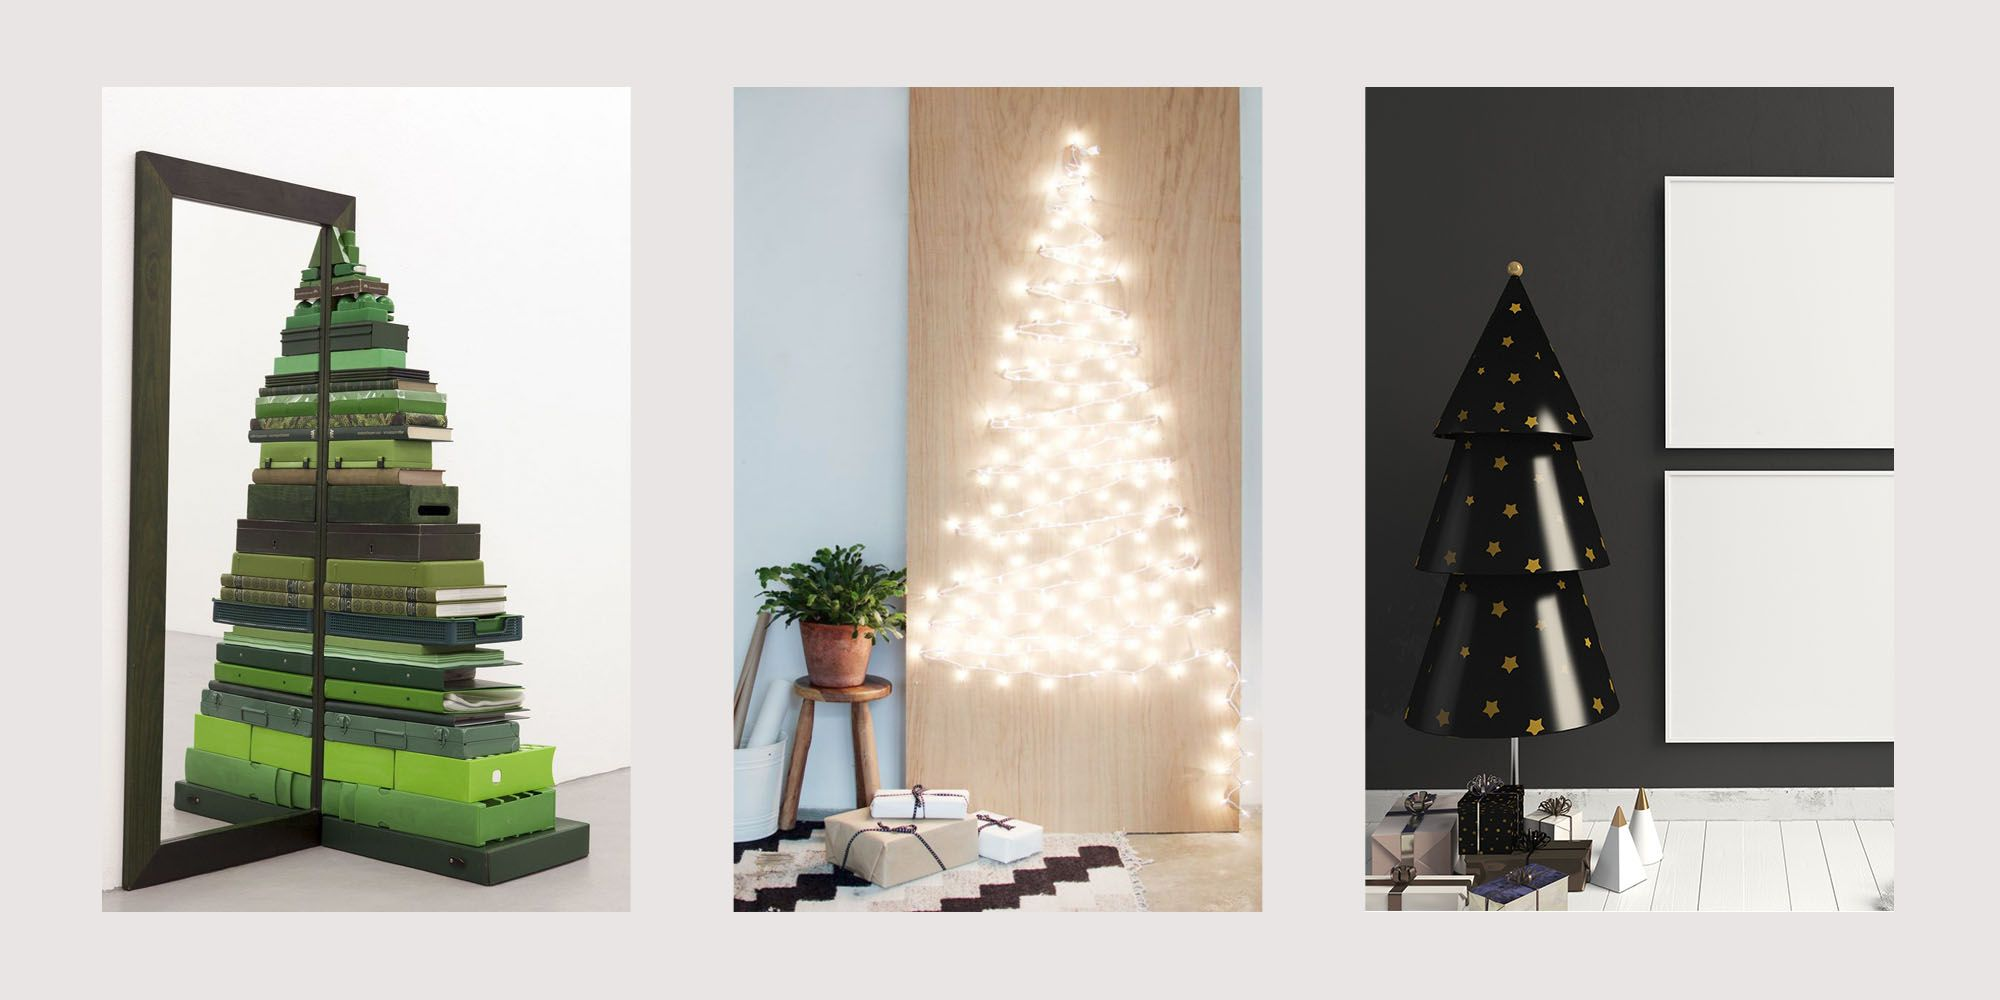 21 Alternative Christmas Trees That Will Make Your Holiday Totally Unique